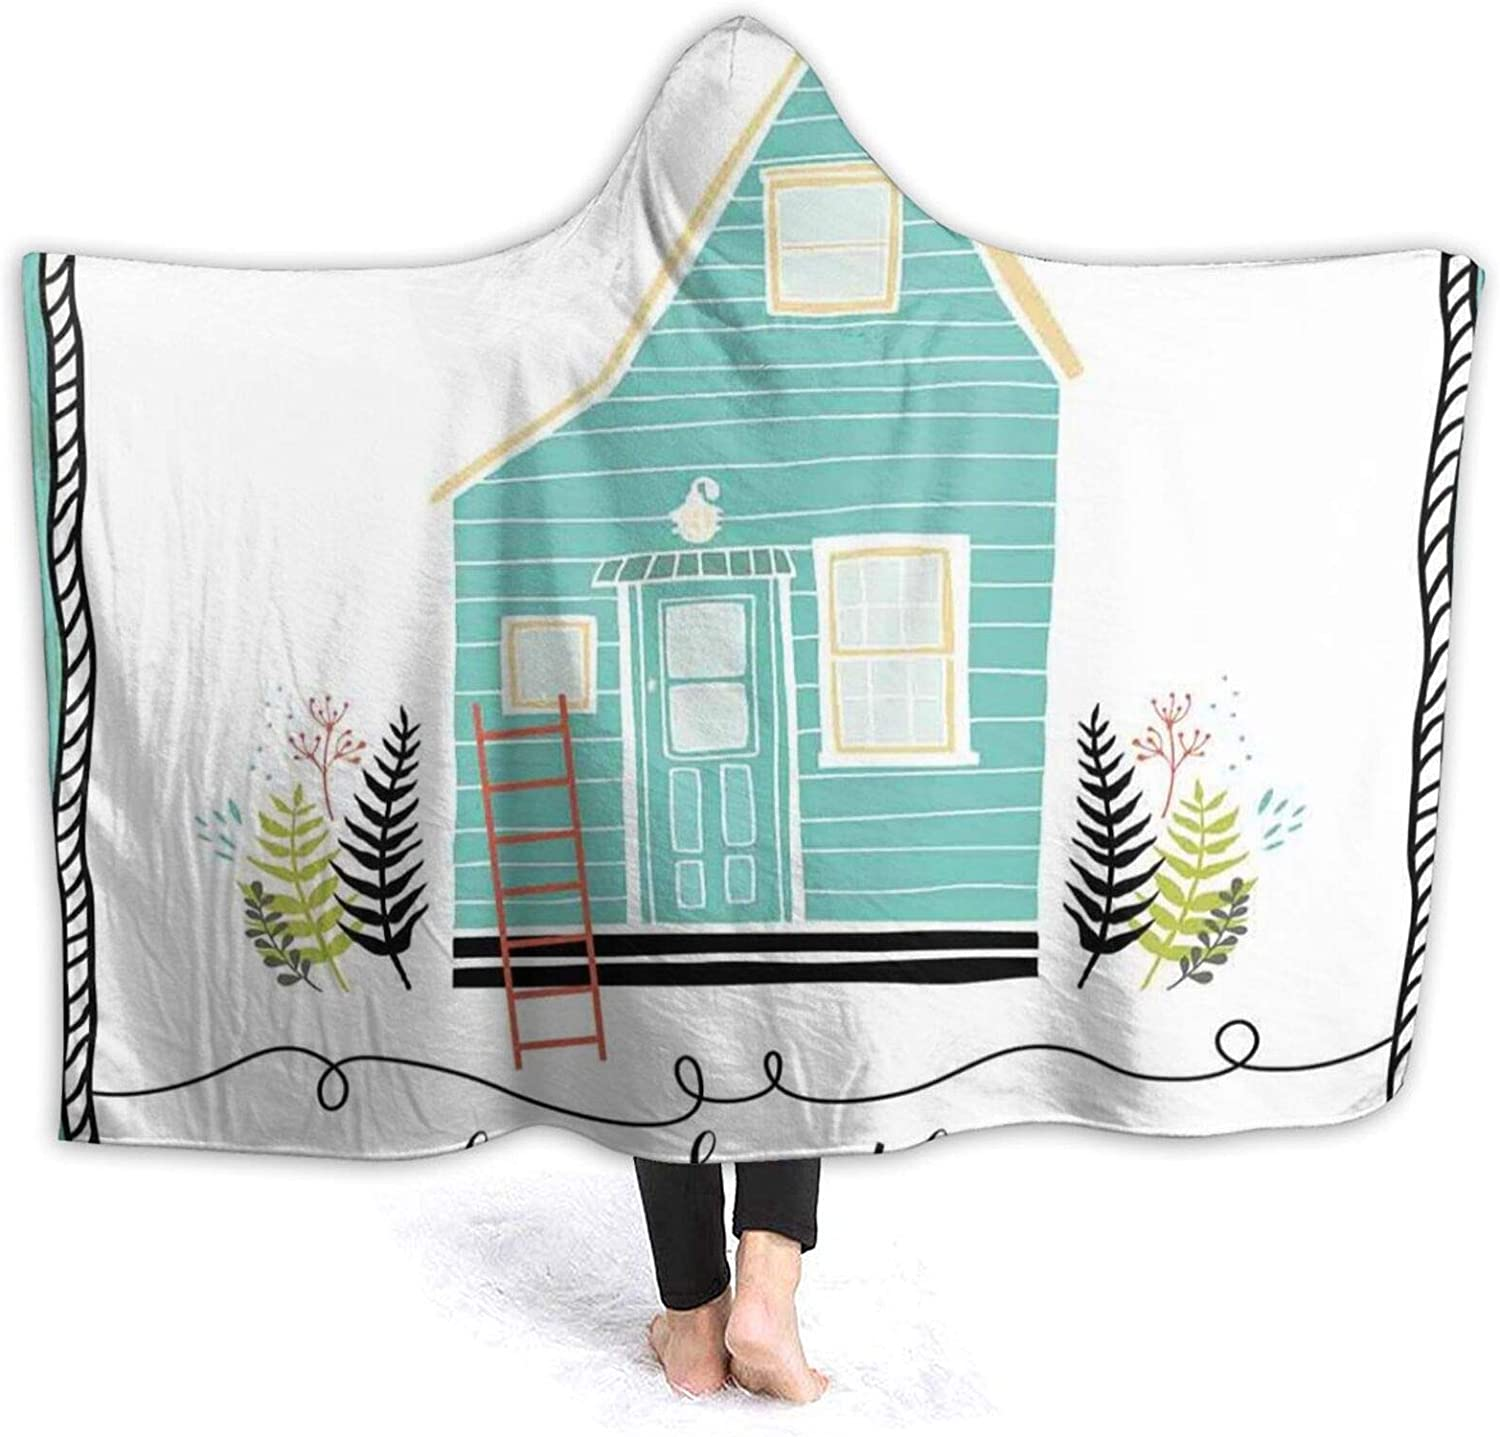 Hooded Blanket Free shipping anywhere in the nation Anti-Pilling Flannel Small The Countrysi in At the price of surprise House